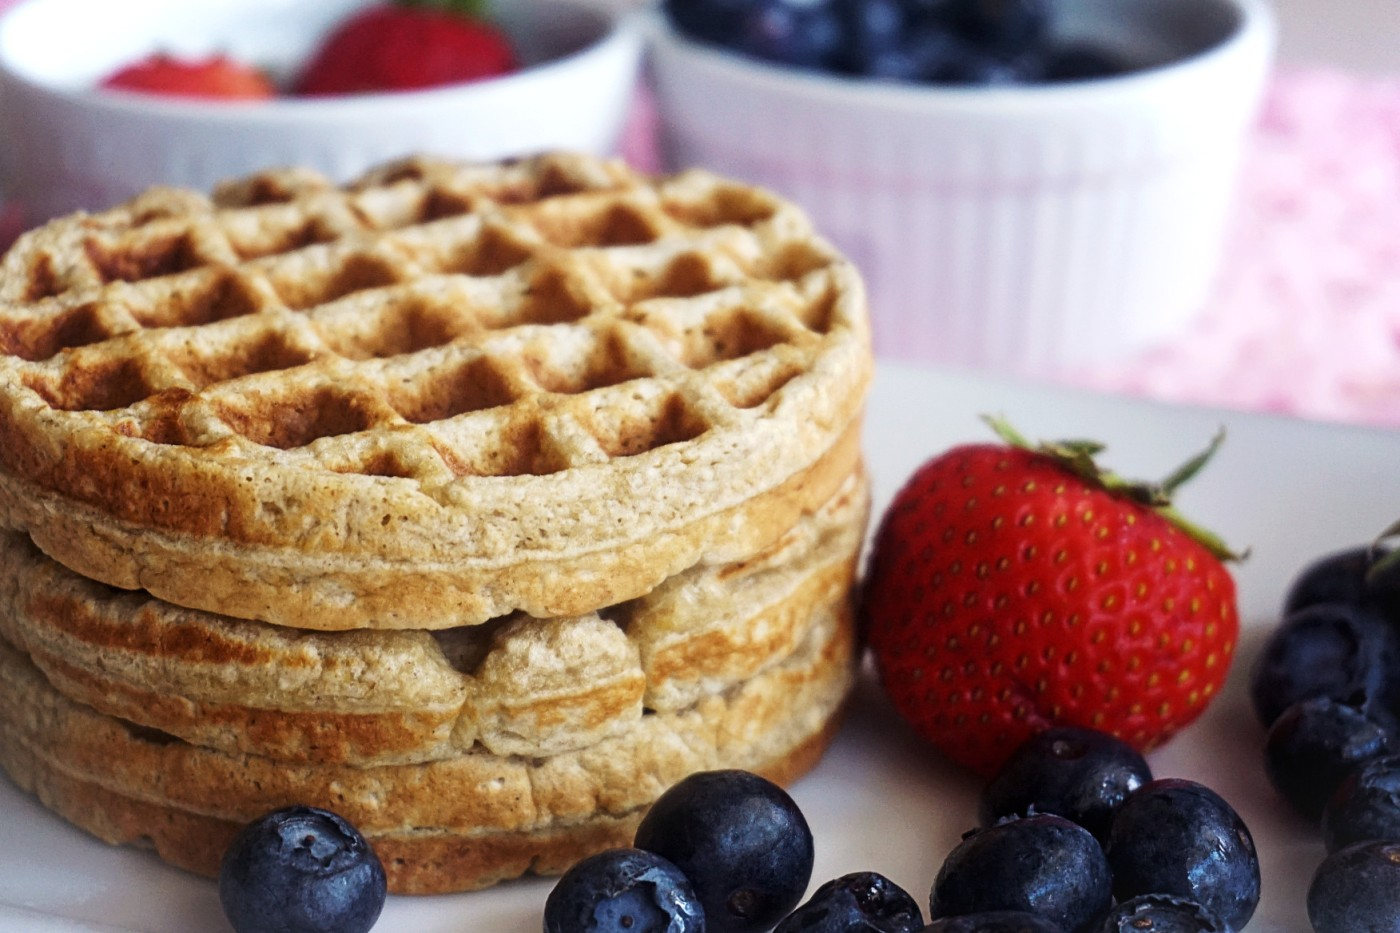 Stack of waffles with fruits by the side